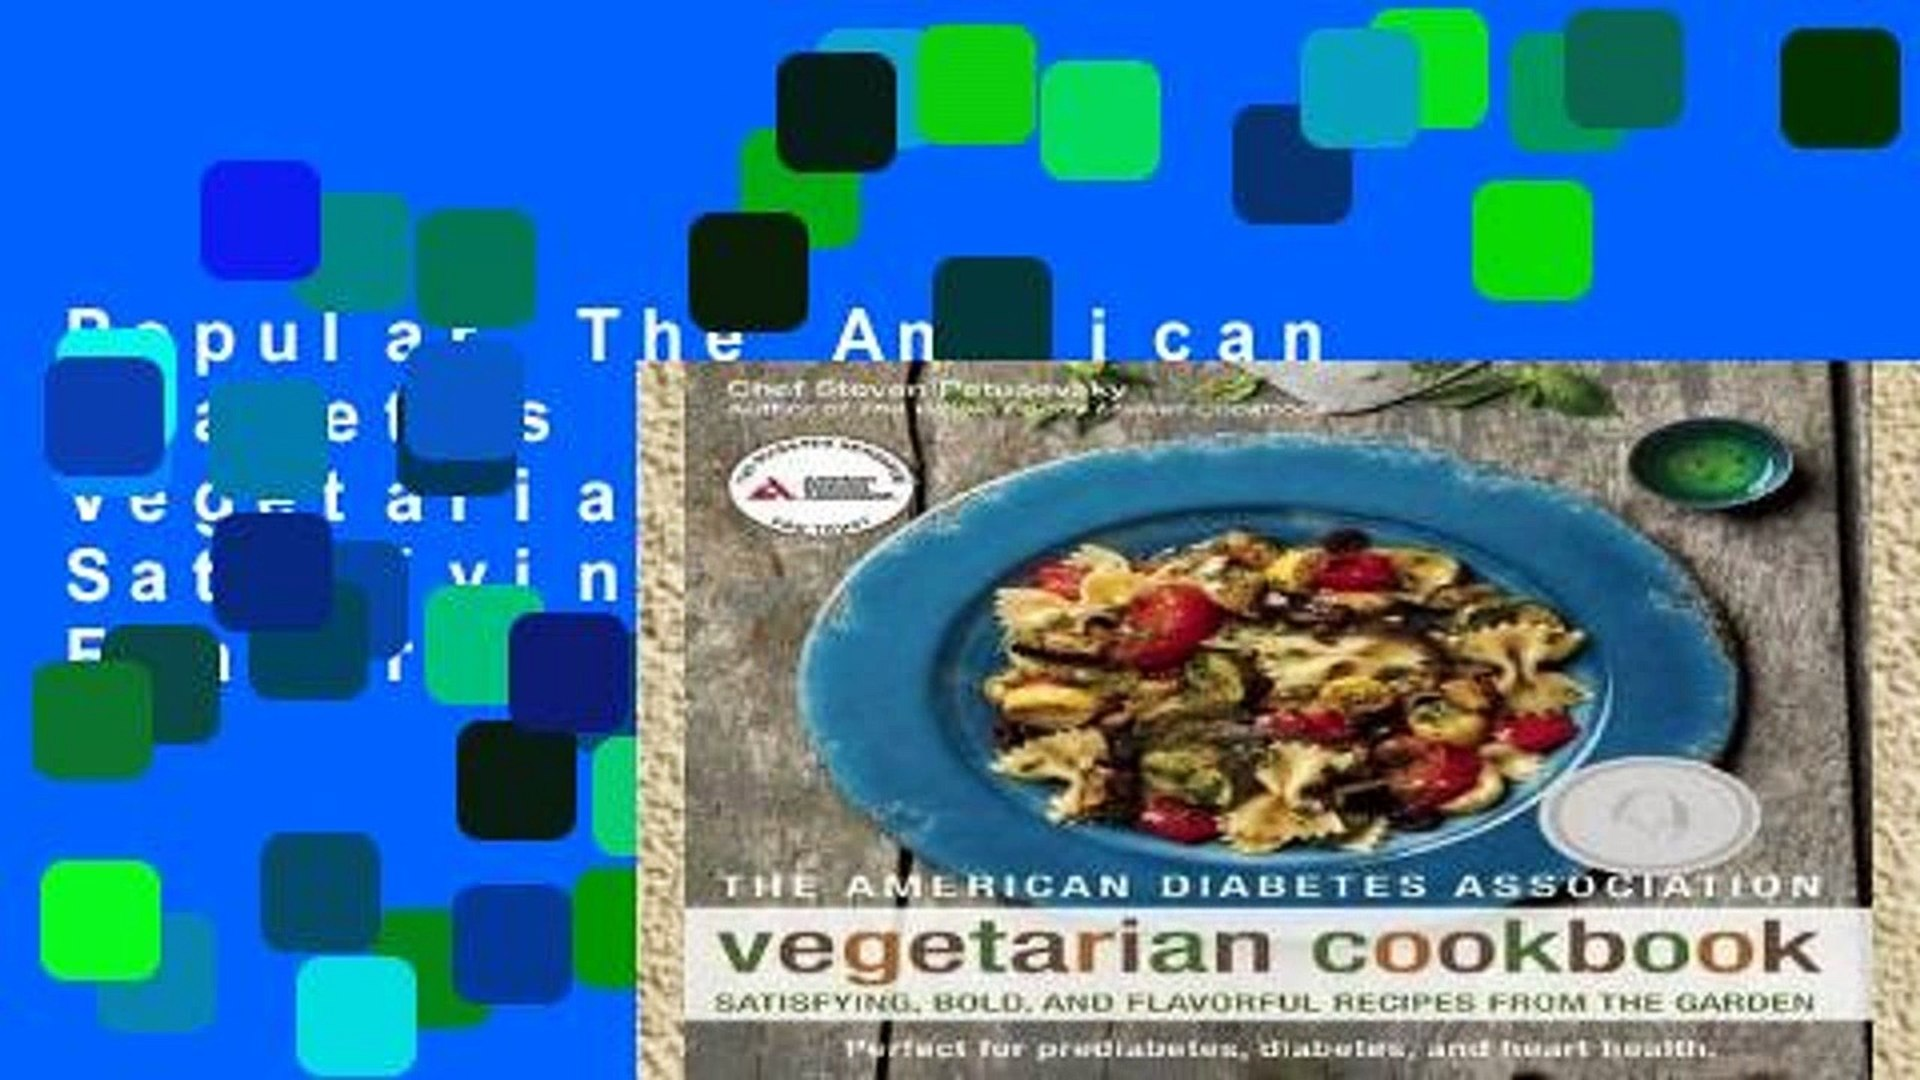 Popular The American Diabetes Association Vegetarian Cookbook Satisfying Bold And Flavorful